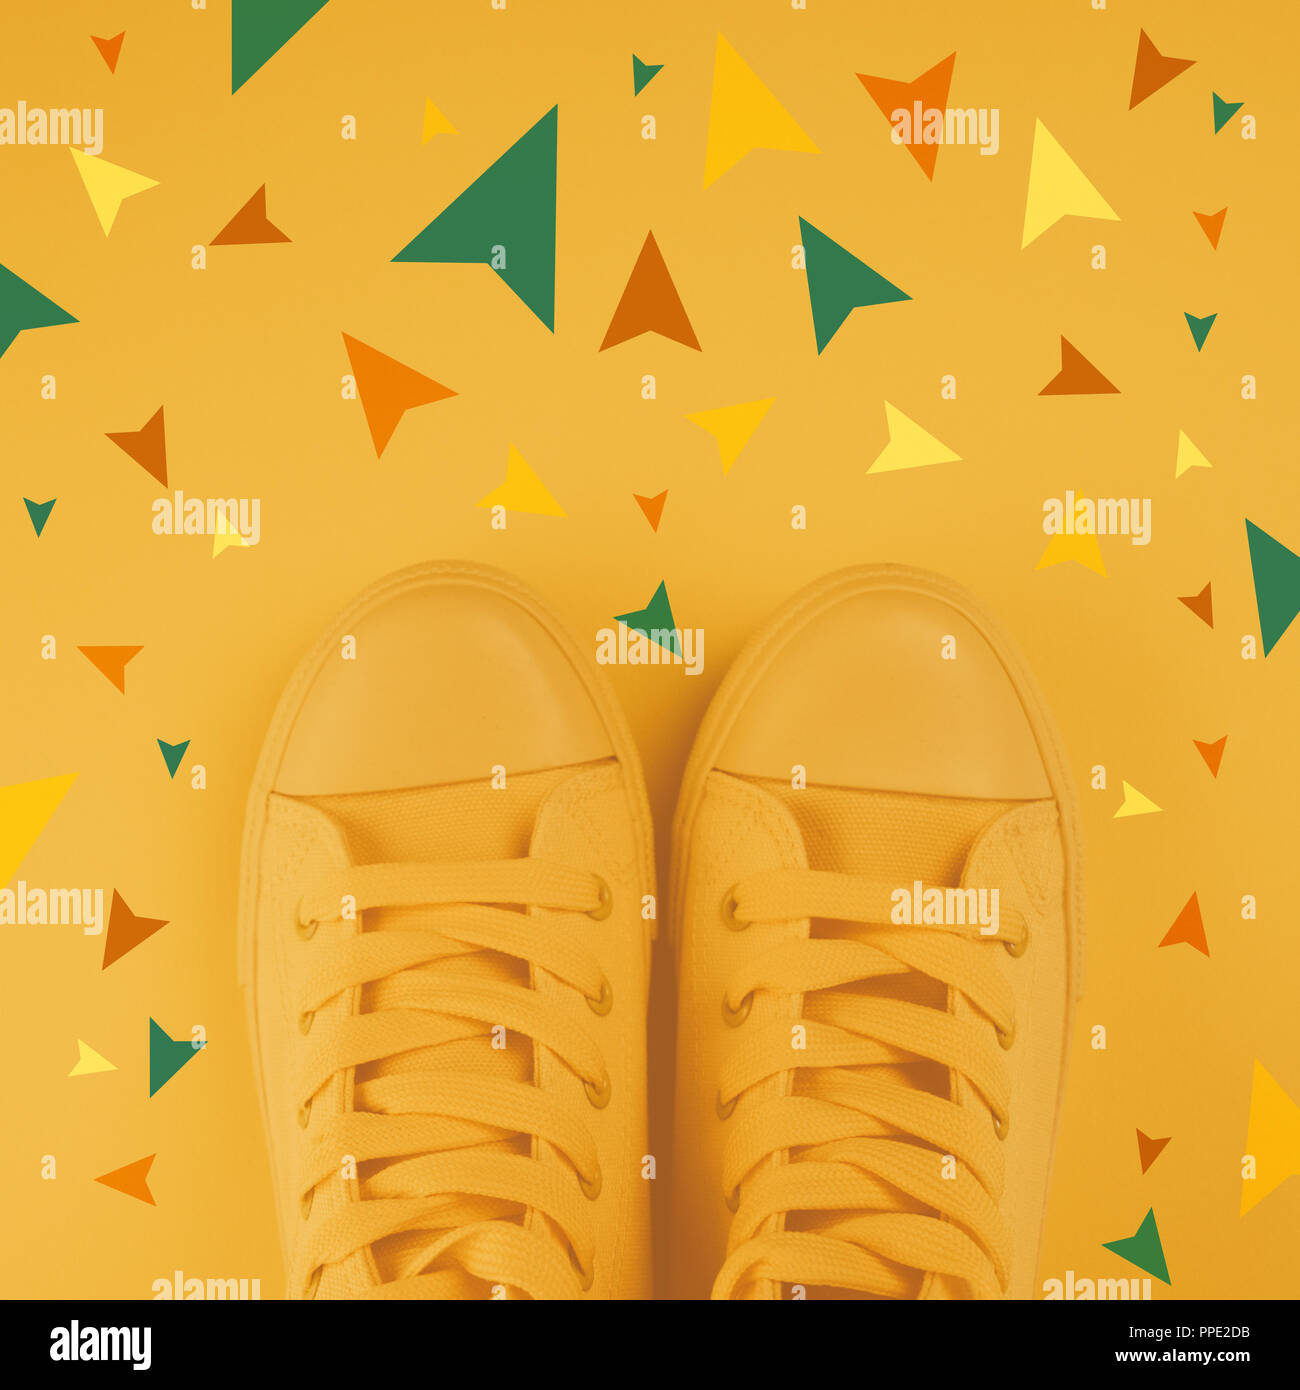 Making decisions and right choices in life concept, youth style sneakers from above with arrows pointing to different directions as if person had vari - Stock Image